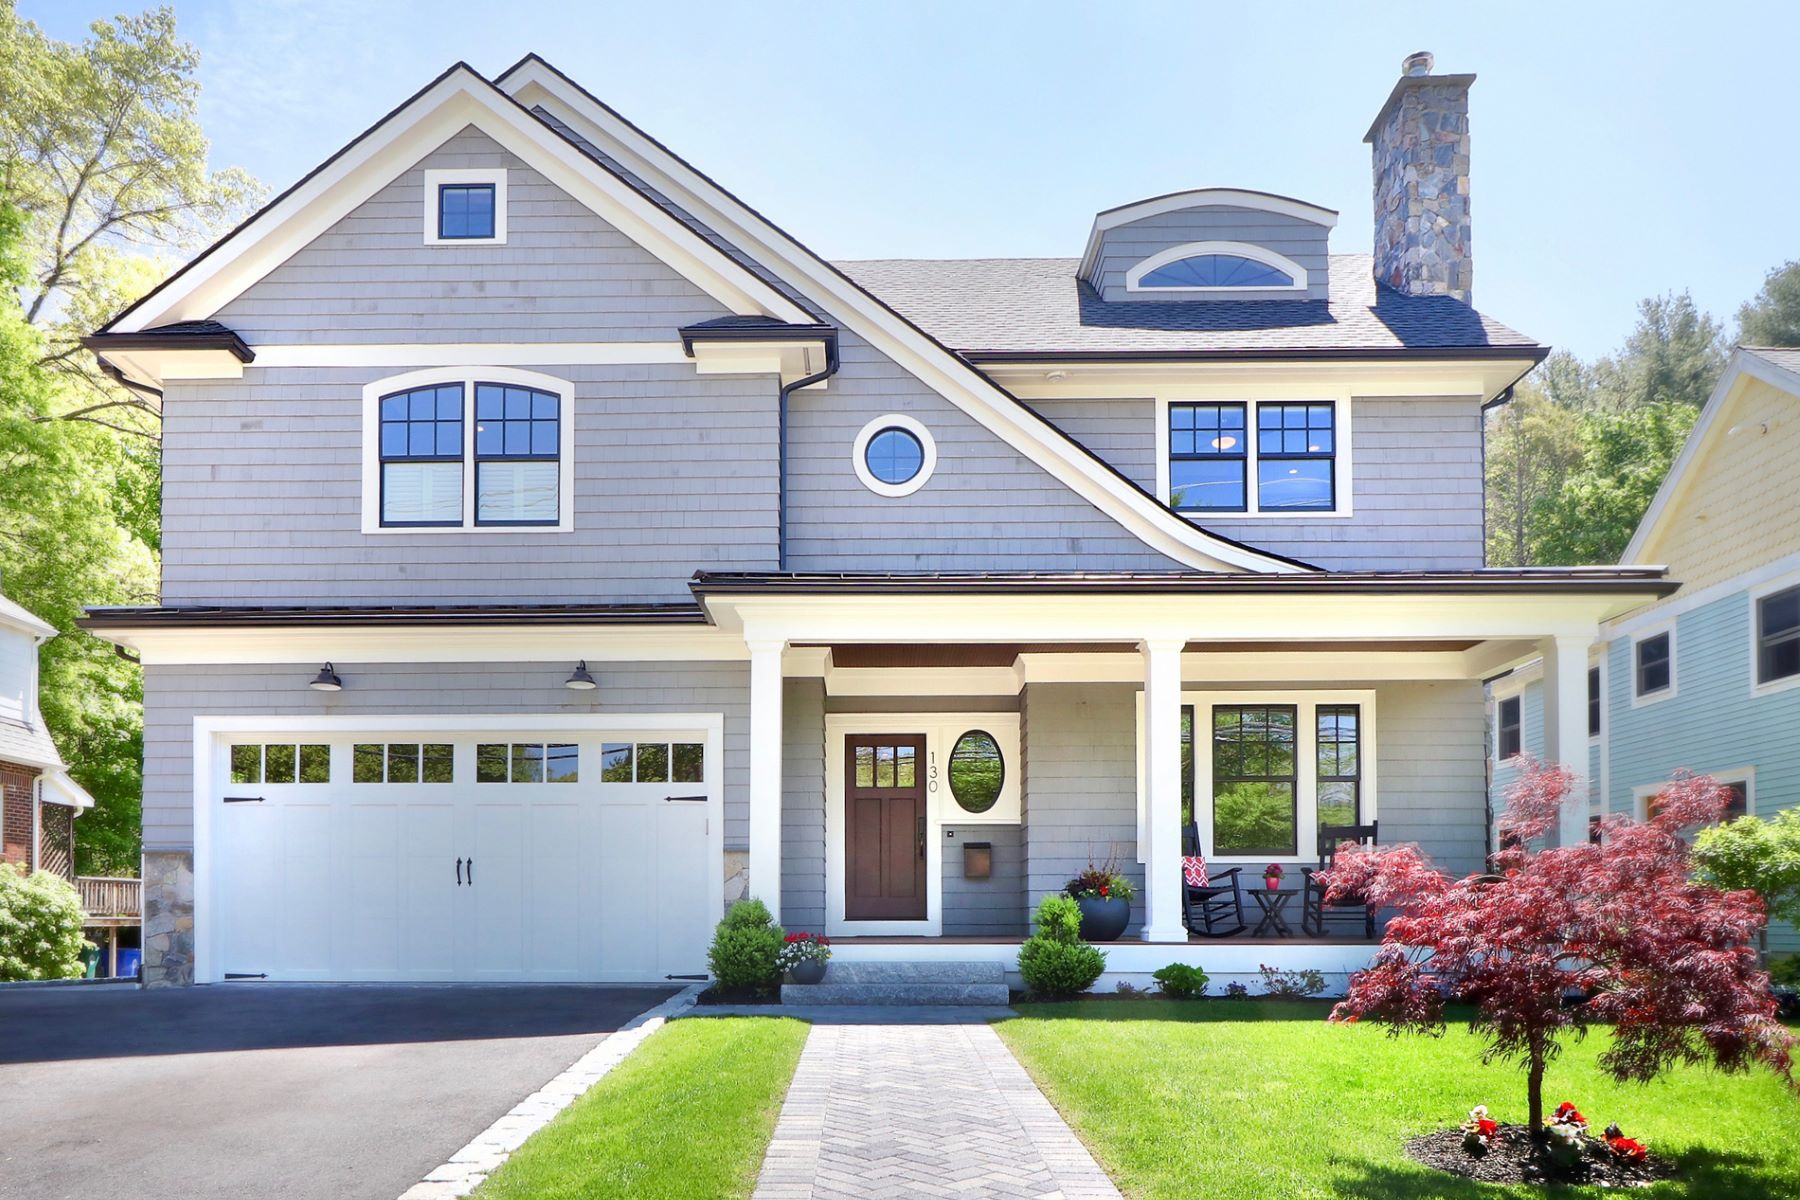 Single Family Home for Sale at 130 Beethoven Ave, Newton Newton, Massachusetts 02468 United States